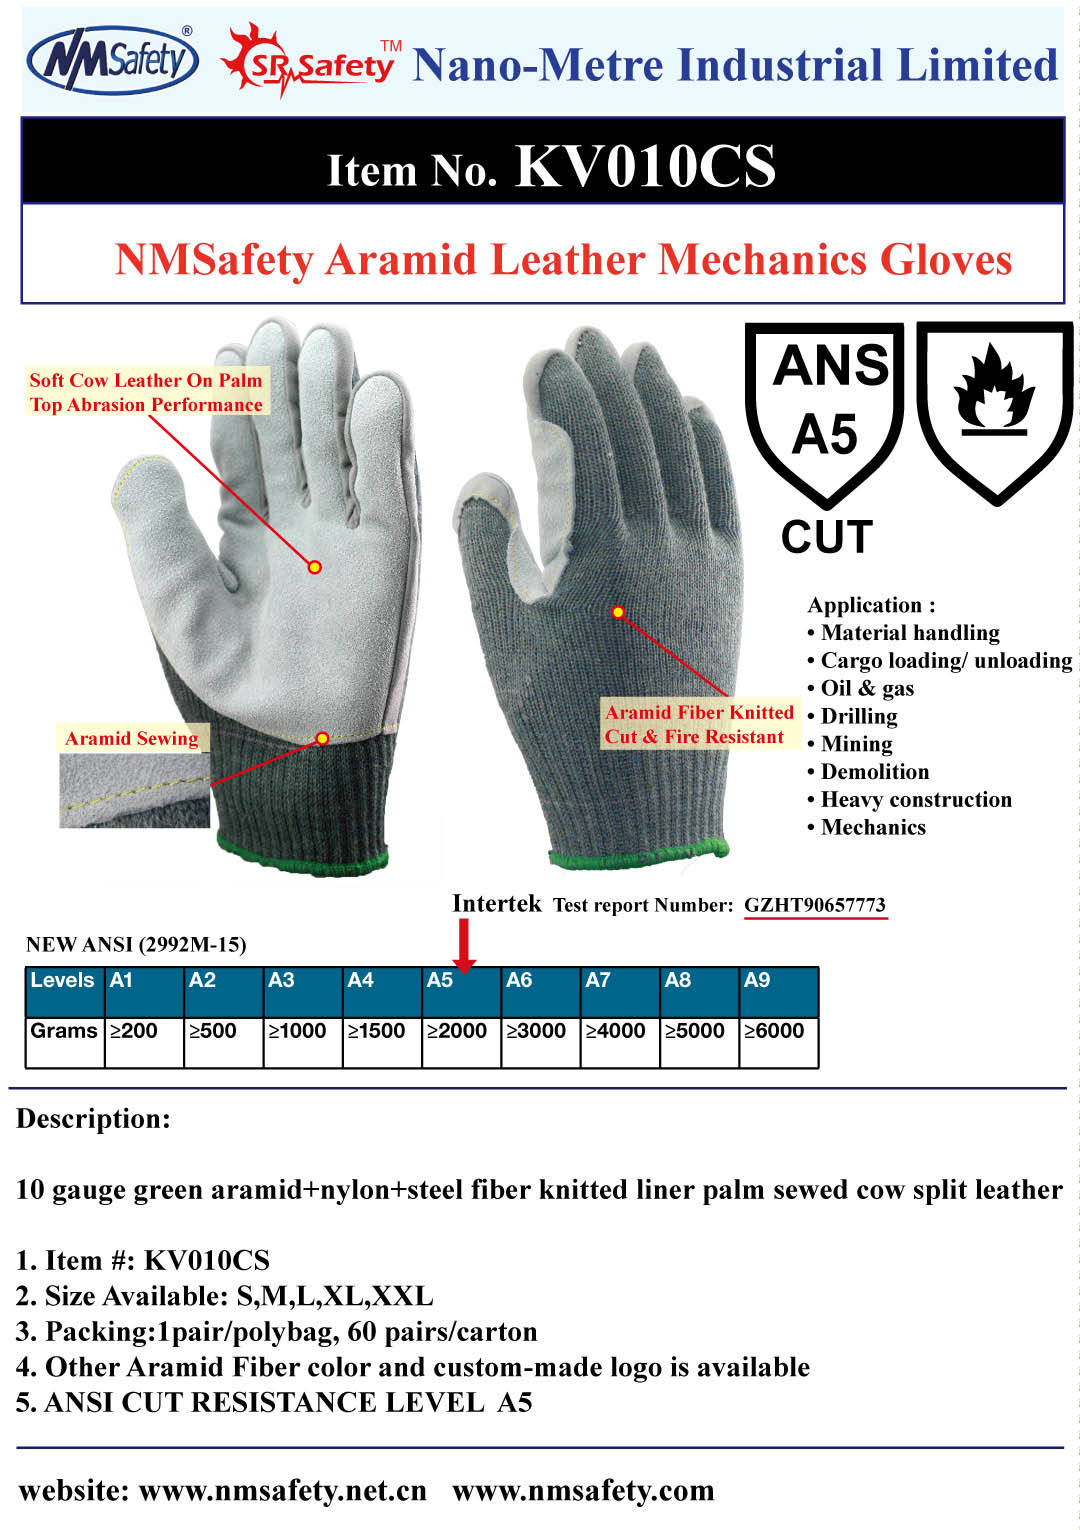 aramid+nylon+steel fiber palm sewing cow split leather ANSI 5 cut resistant glove